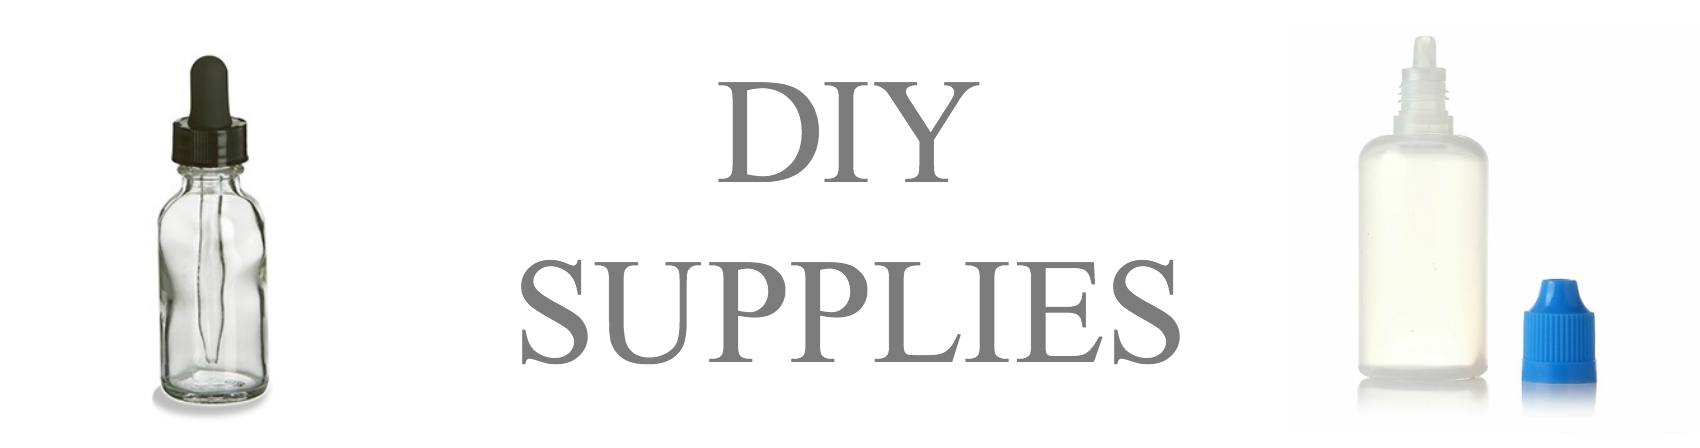 DIY Supplies and Best e juice Concentrate Flavors